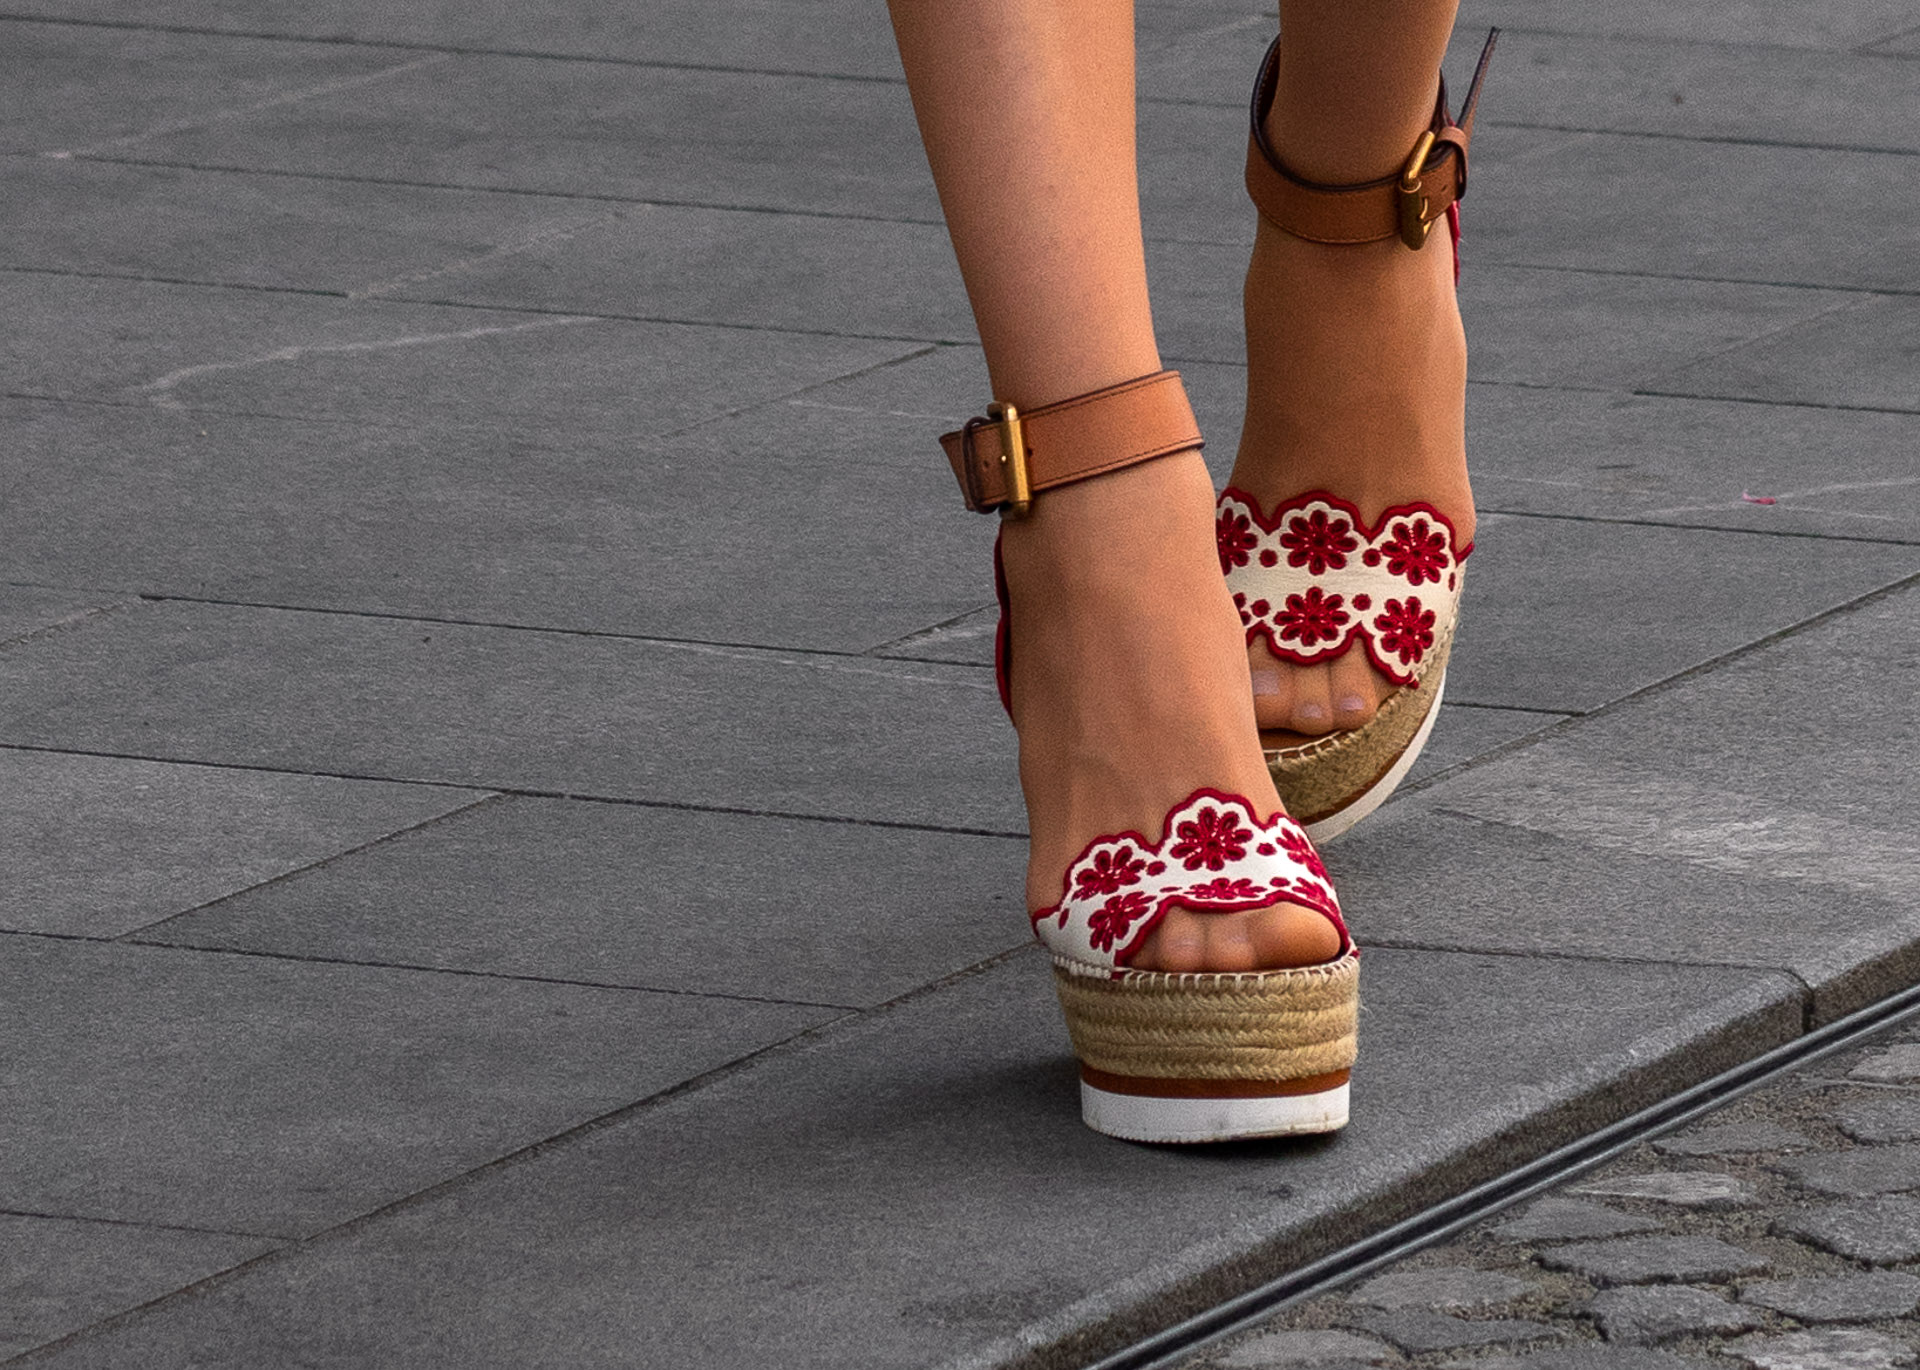 Fashion Blogger Veronika Lipar of Brunette from Wall Street wearing See by Chloé wedge espadrille in the city